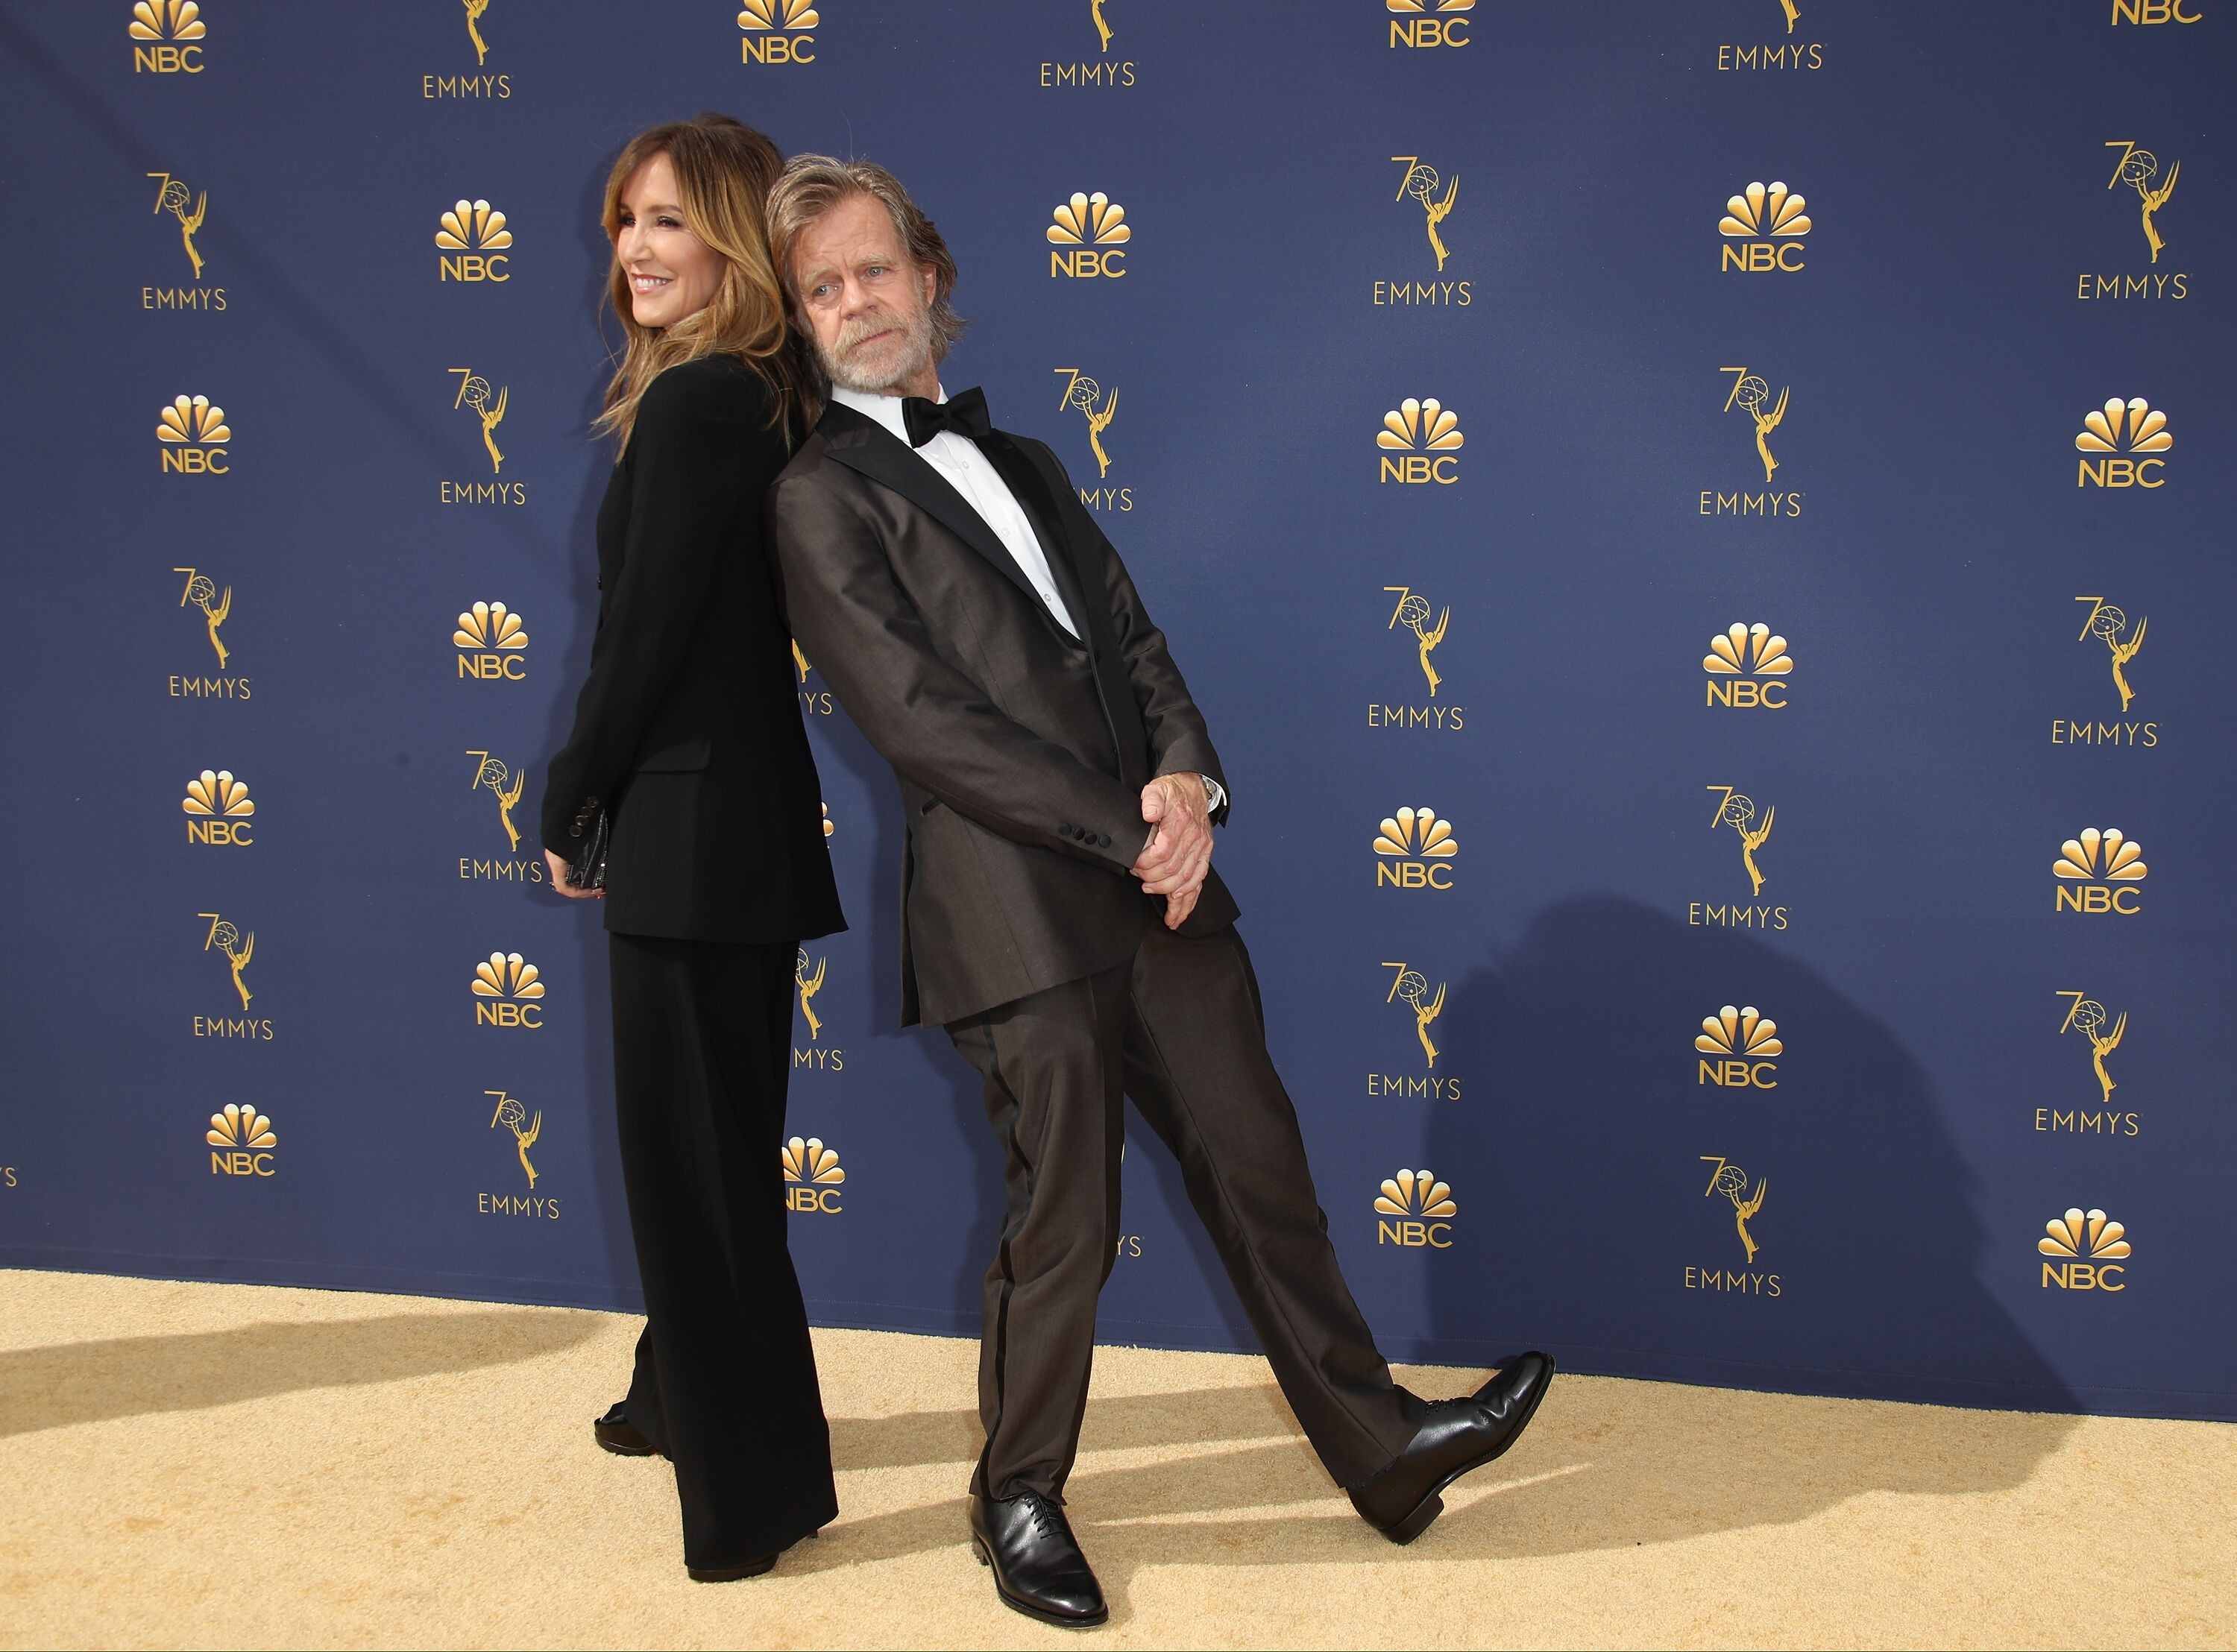 Felicity Huffman and William H. Macy attend the 70th Emmy Awards at Microsoft Theater on September 17, 2018 | Photo: Getty Images